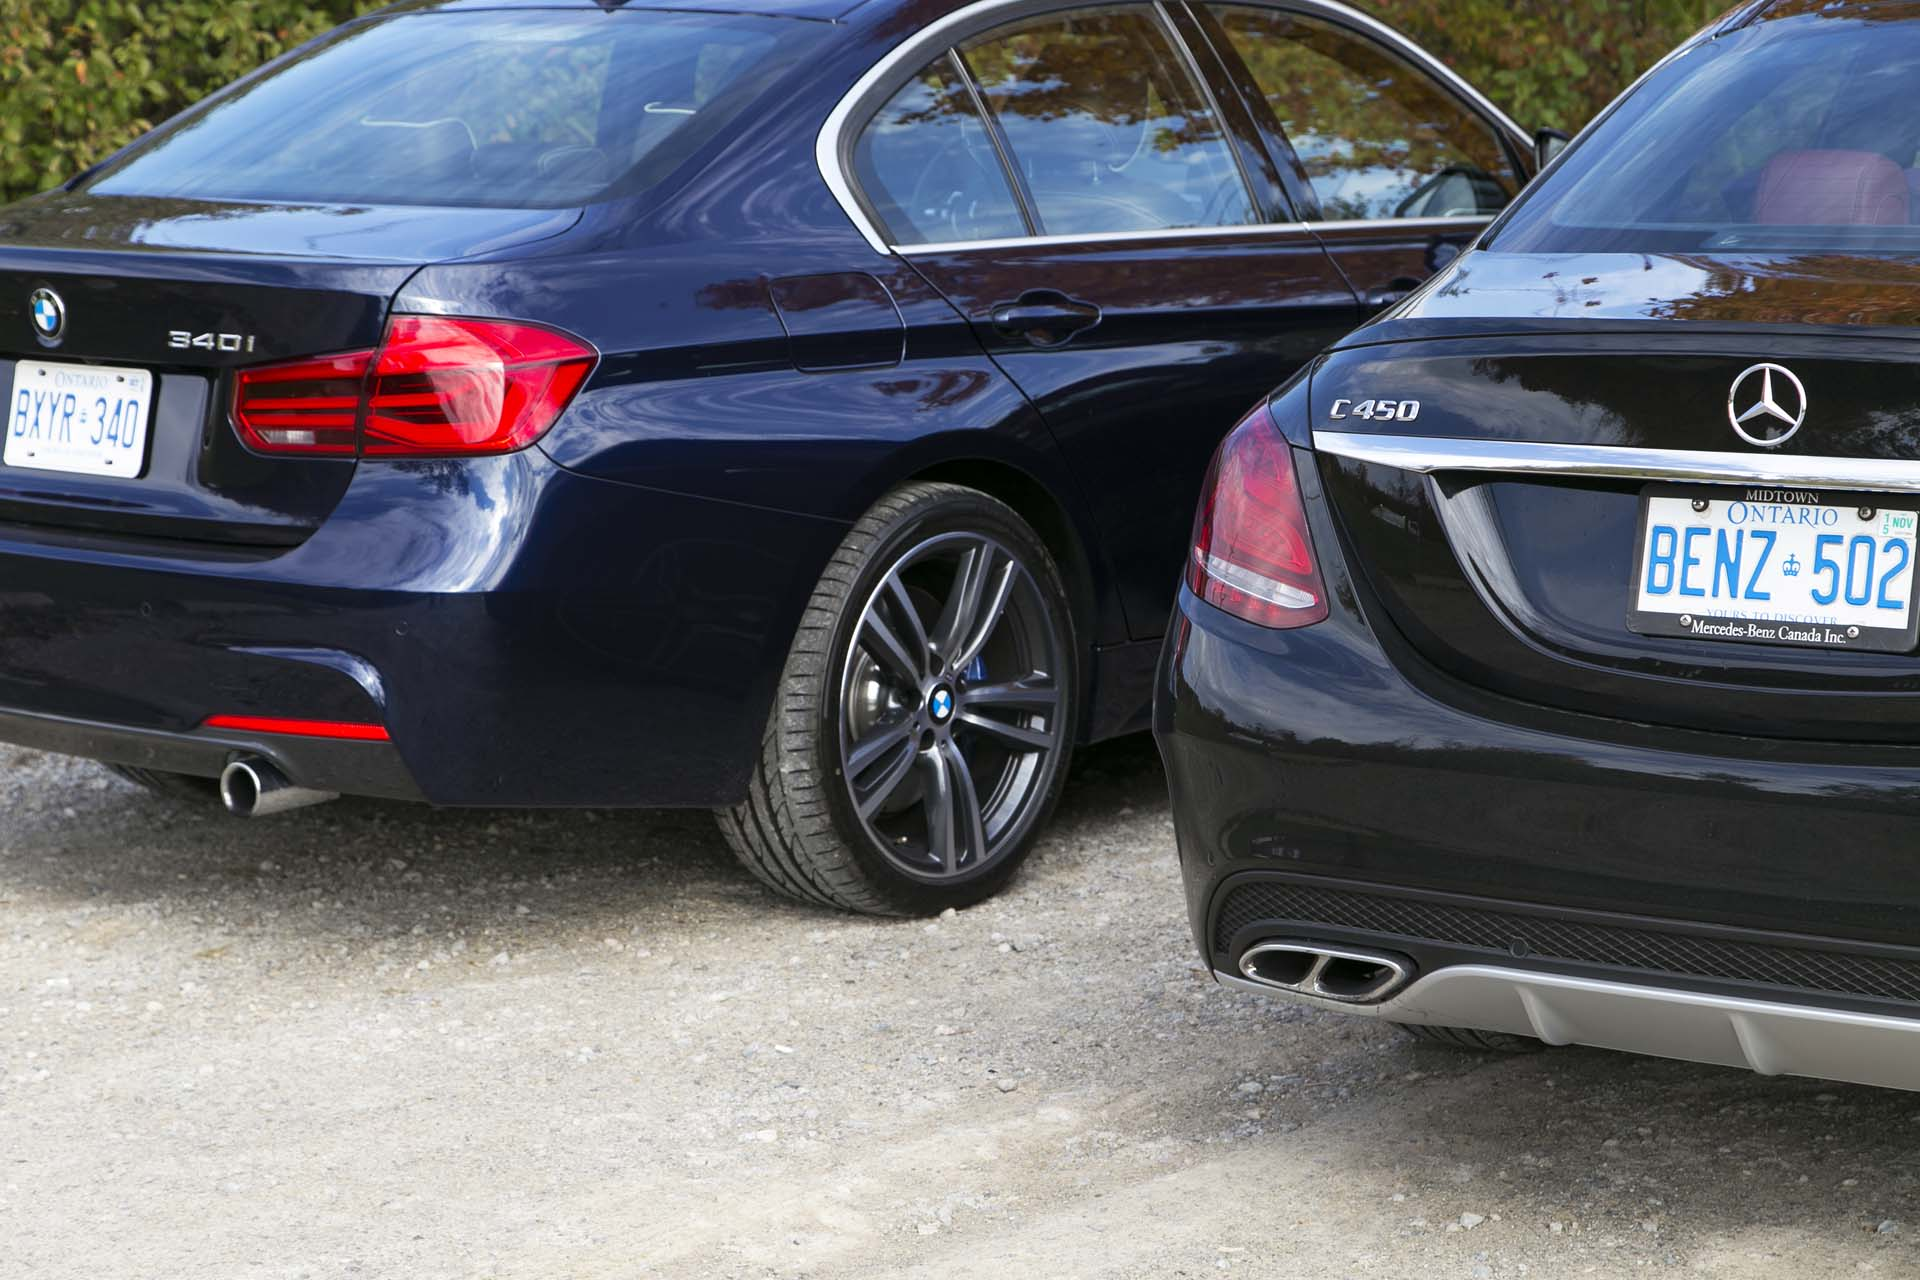 2016 bmw 340i xdrive vs 2016 mercedes benz c 450 amg for Bmw mercedes benz